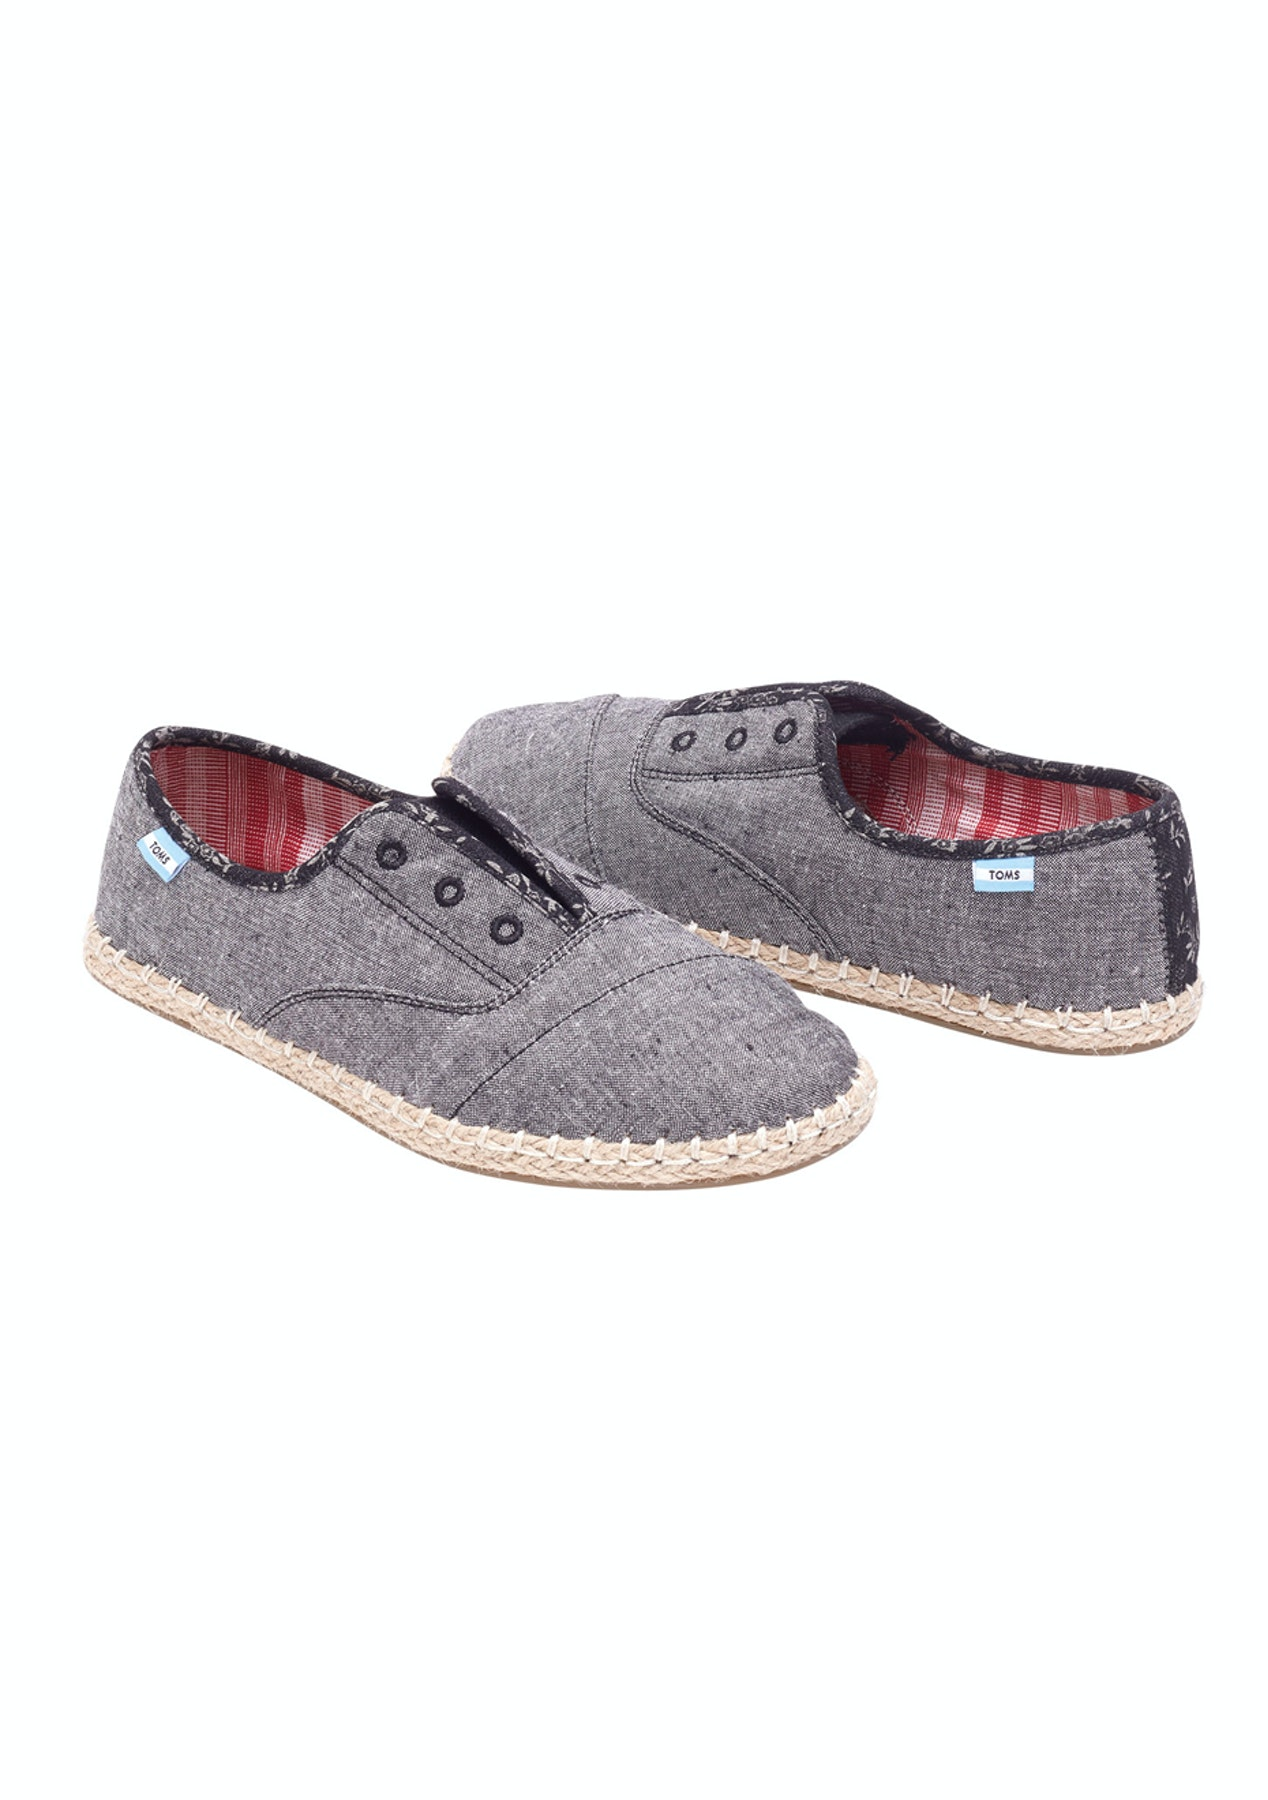 b5abf528a7c Toms - Womens Palmera Slip On - Grey Chambray - Toms - Onceit